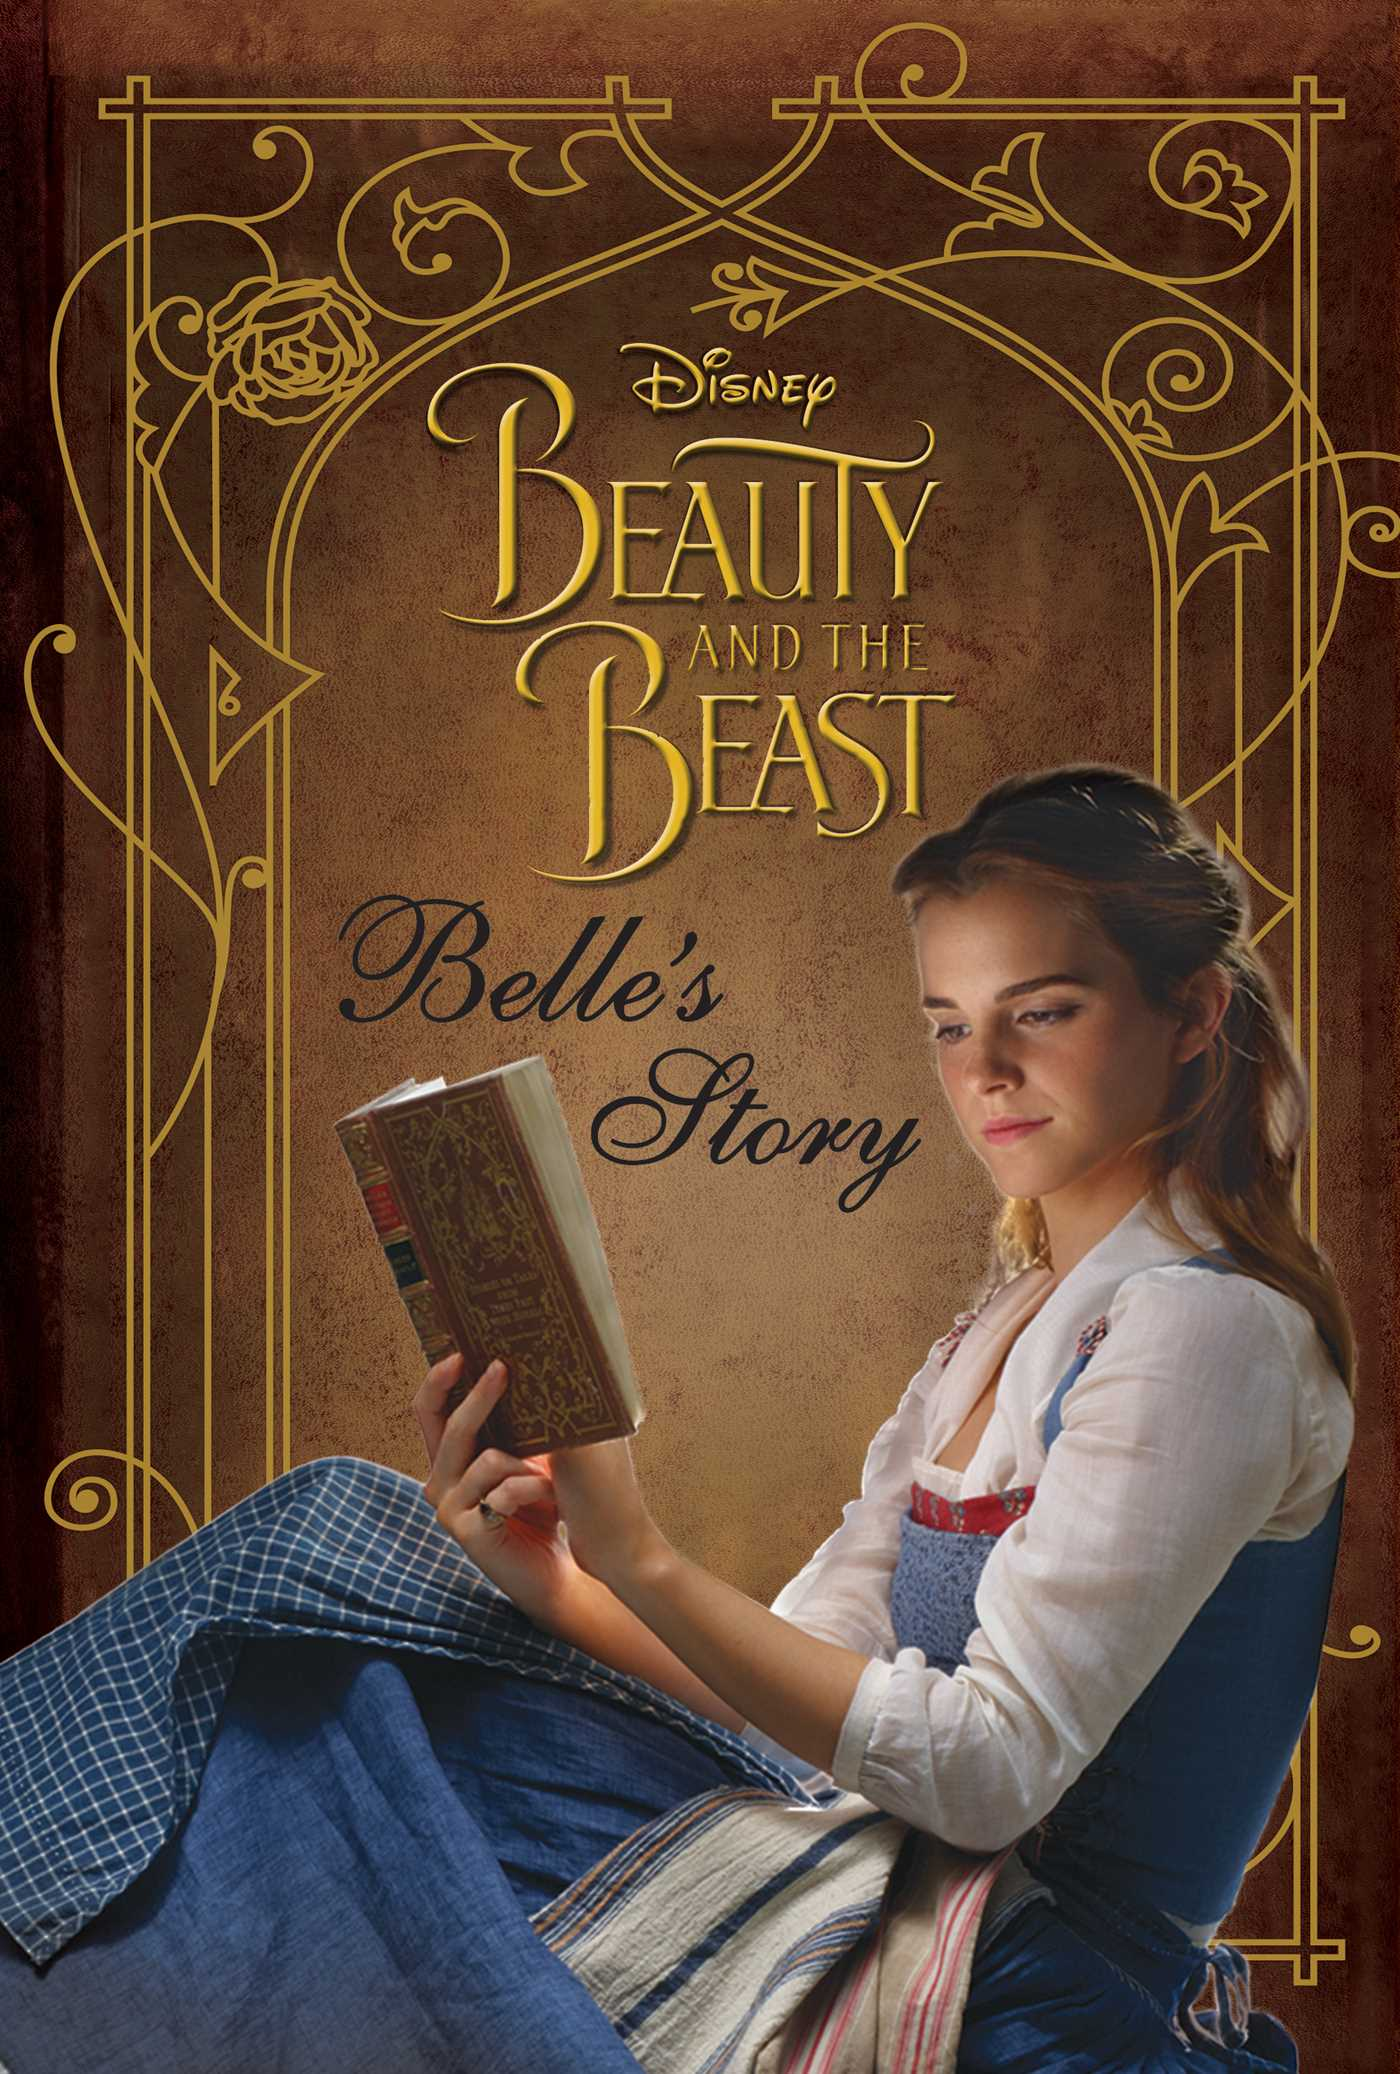 Disney beauty and the beast belles story 9780794440725 hr